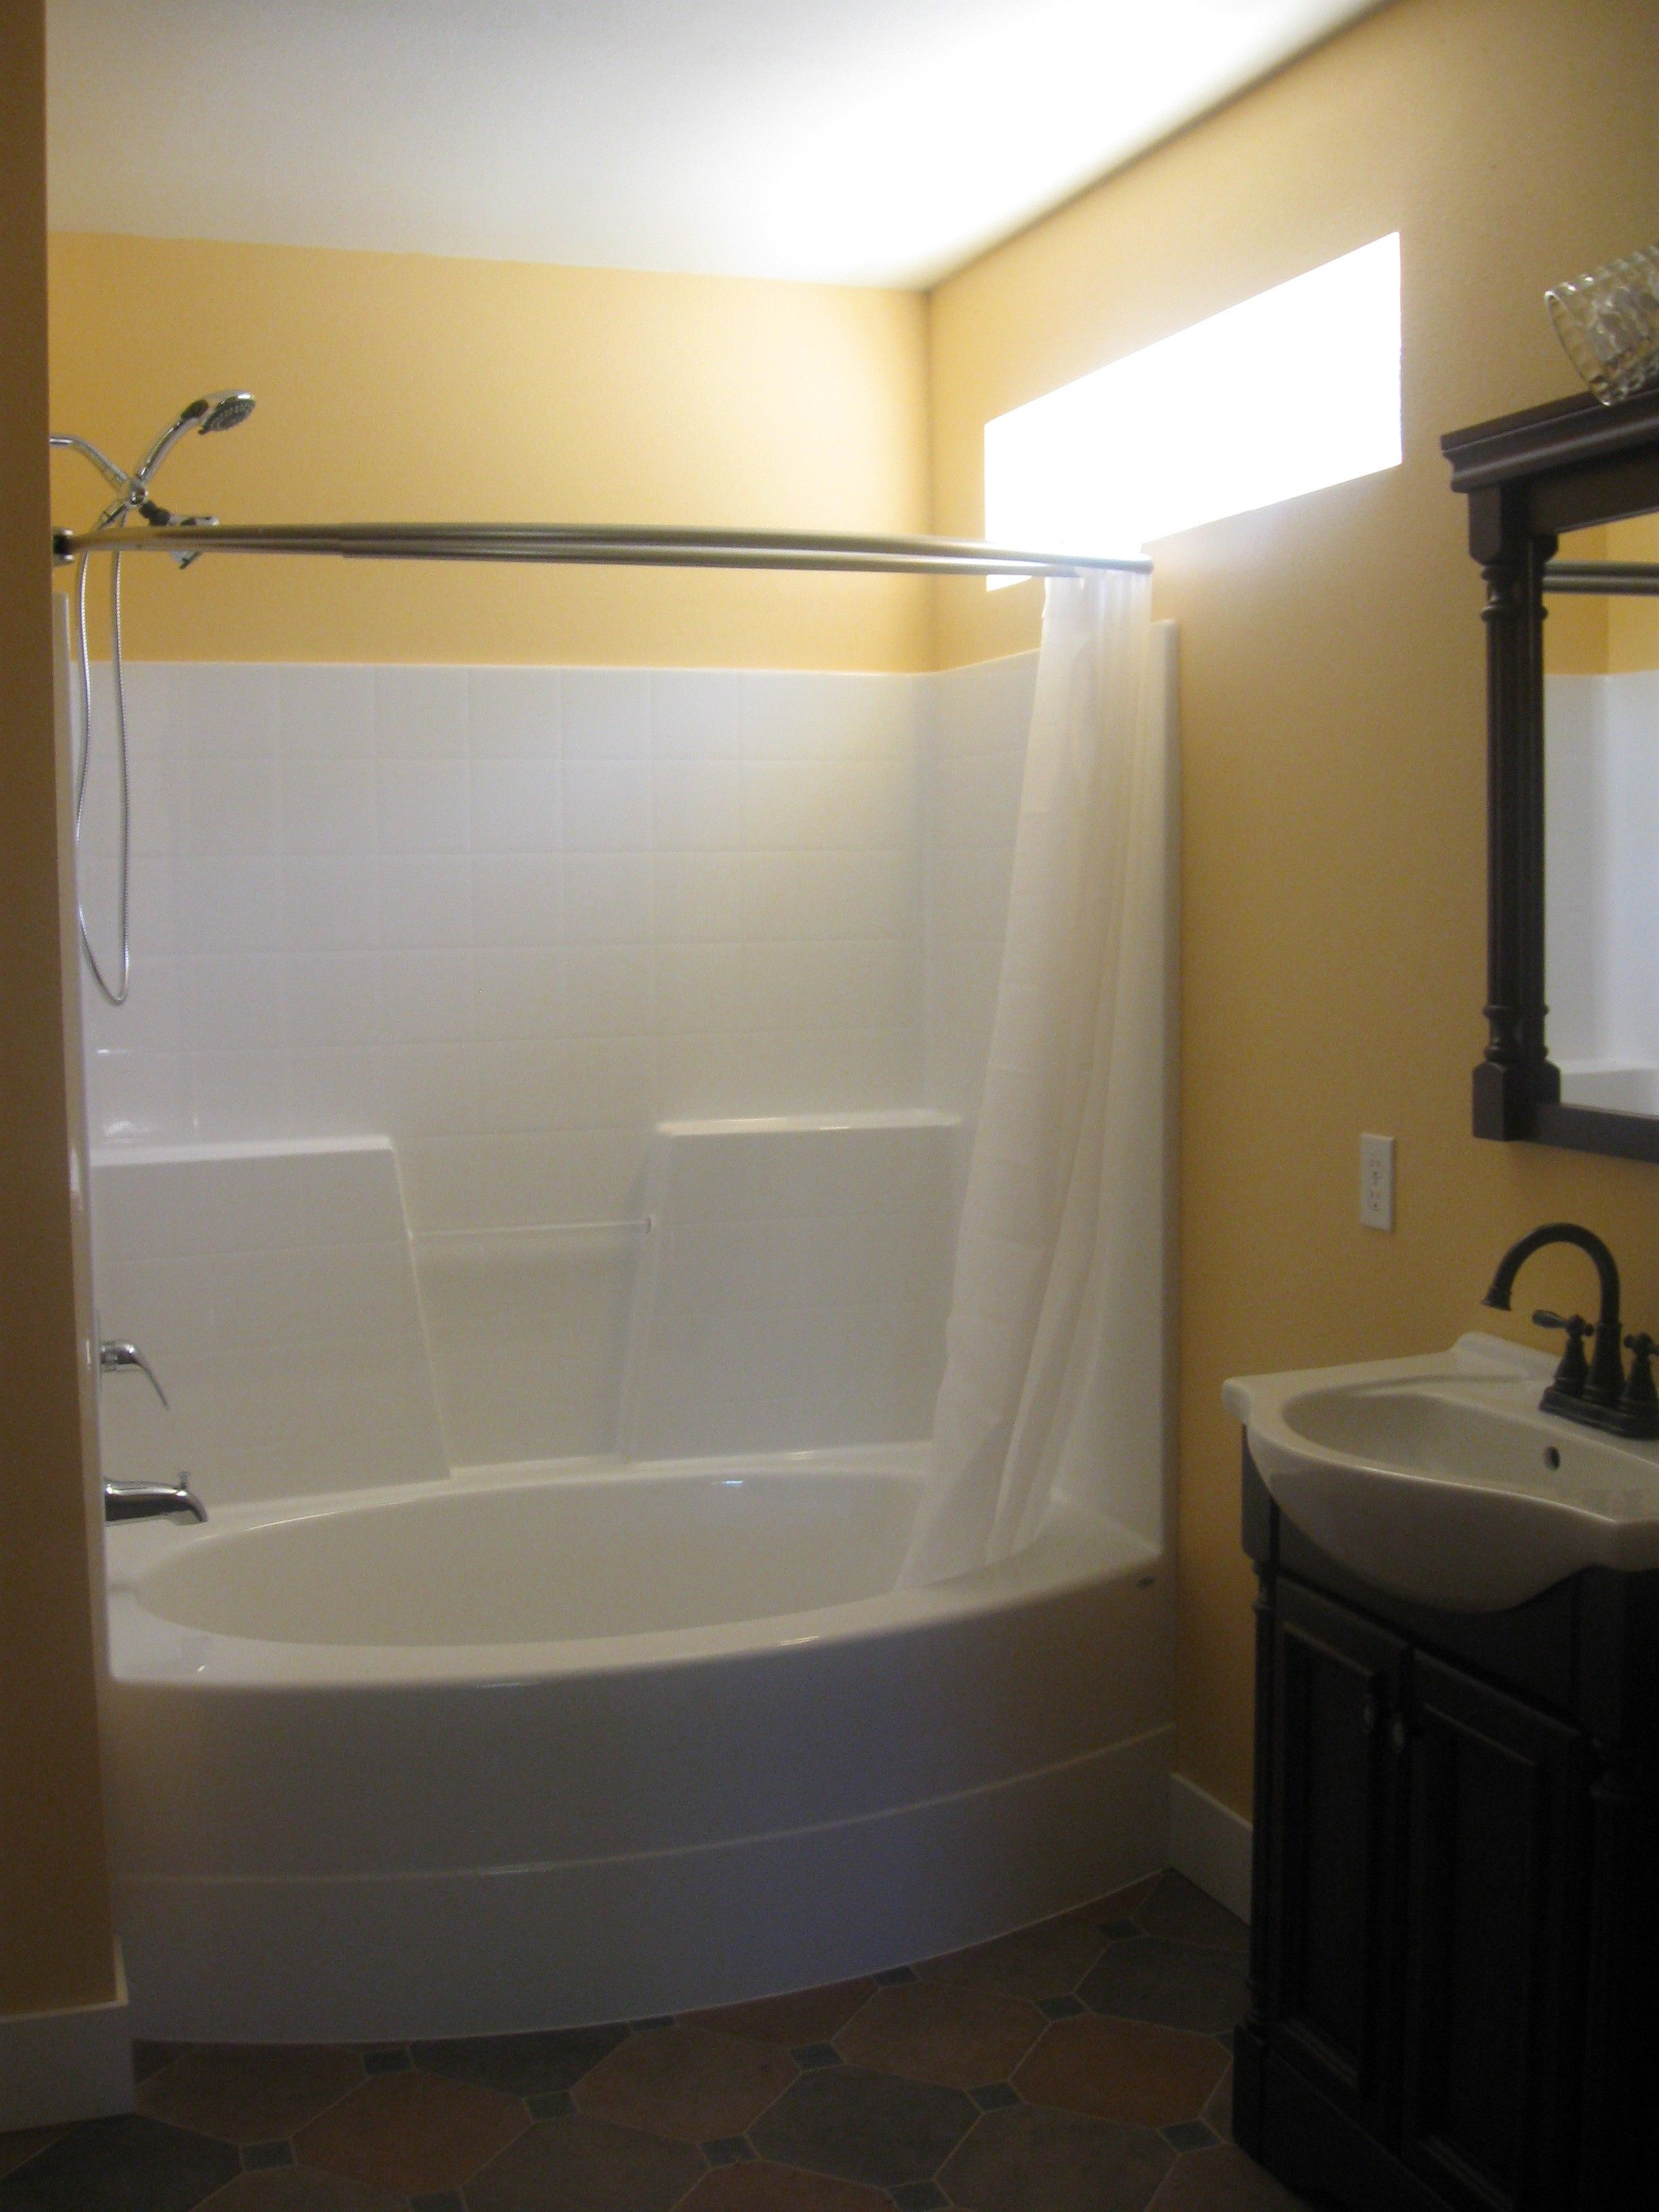 Oval White Fiberglass Corner Bathtub With Shower Curtain, Impressive ...